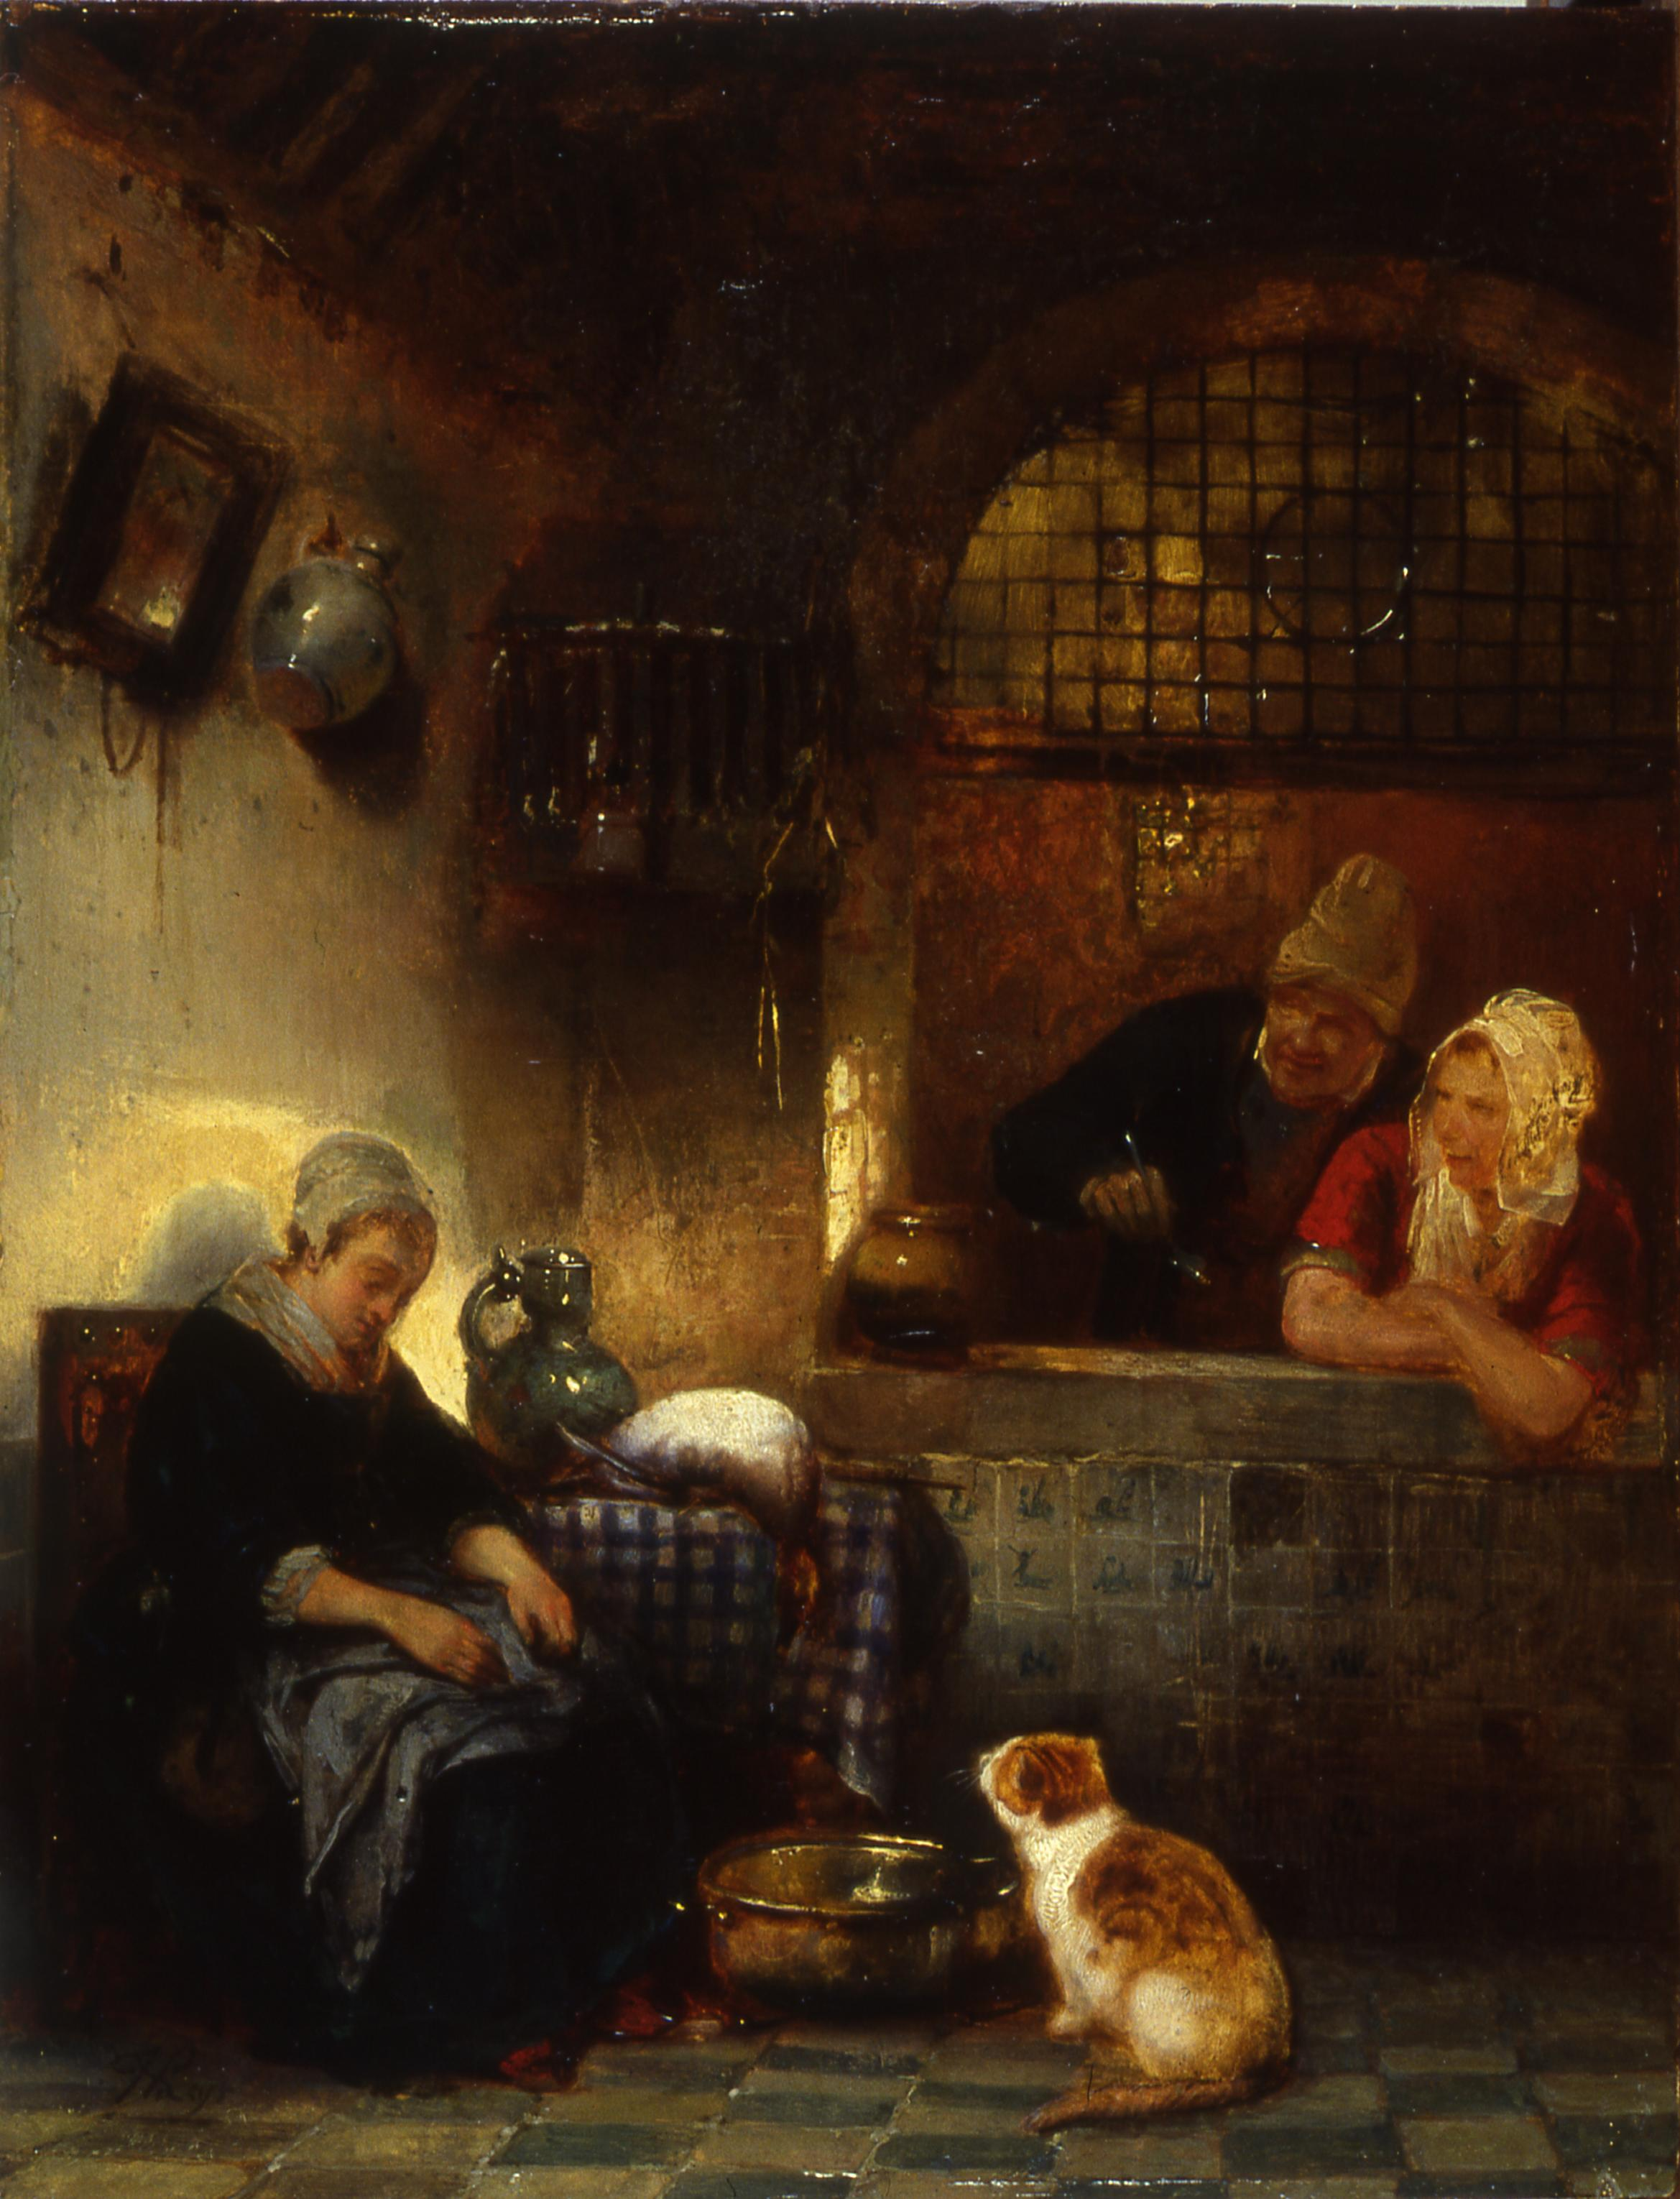 Interior Painting In Winter